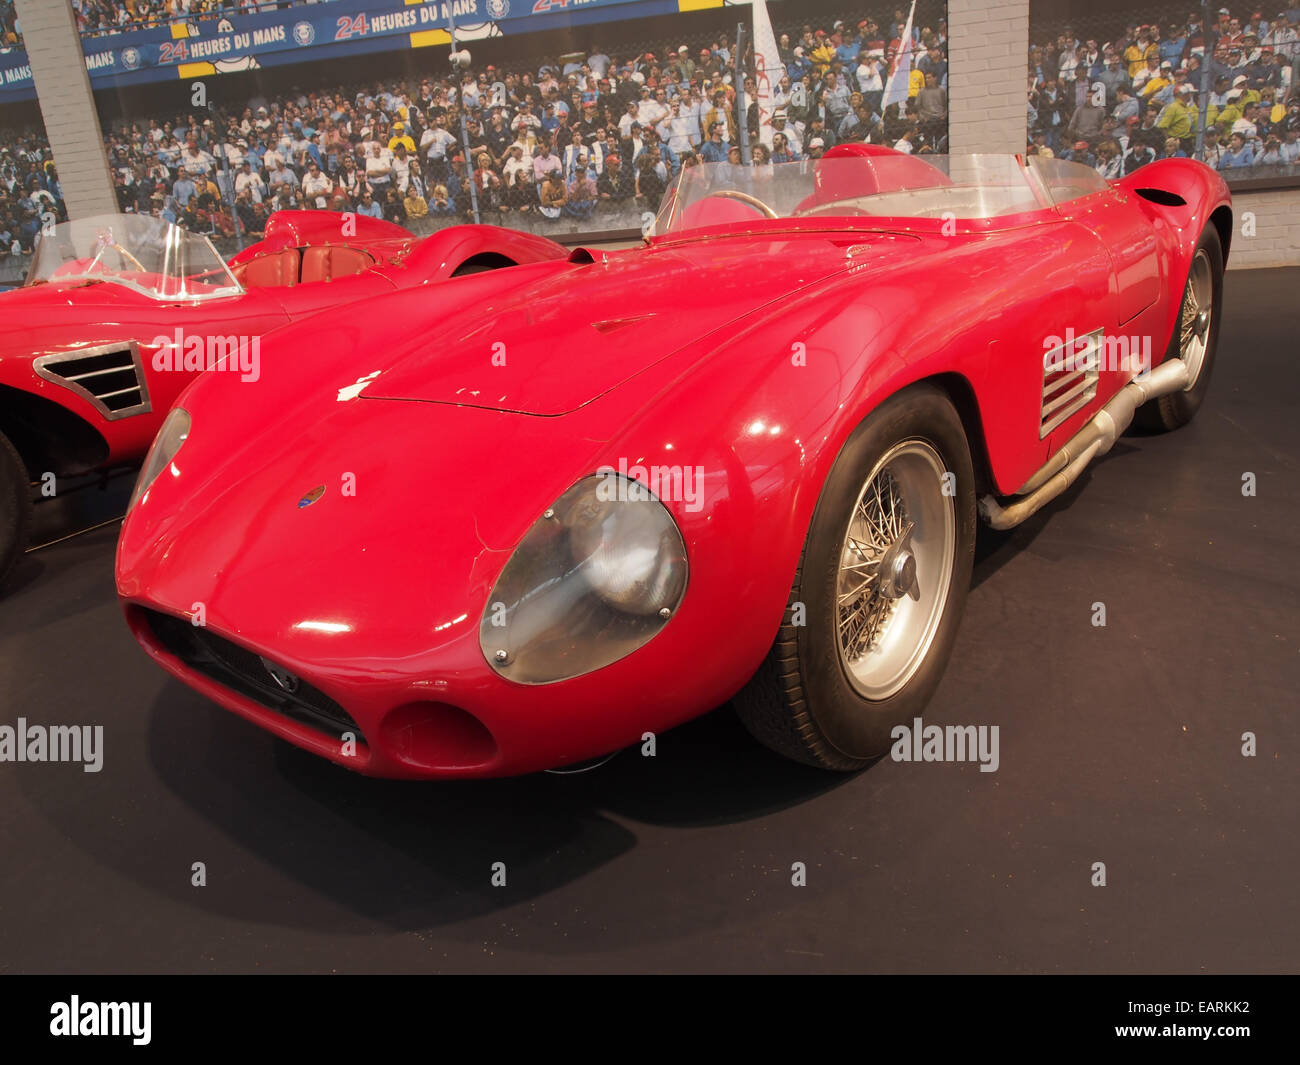 1955 Maserati Sports 300S, 6 cylinders, 2993cm3, 280hp, 280kmh, photo 4 Stock Photo